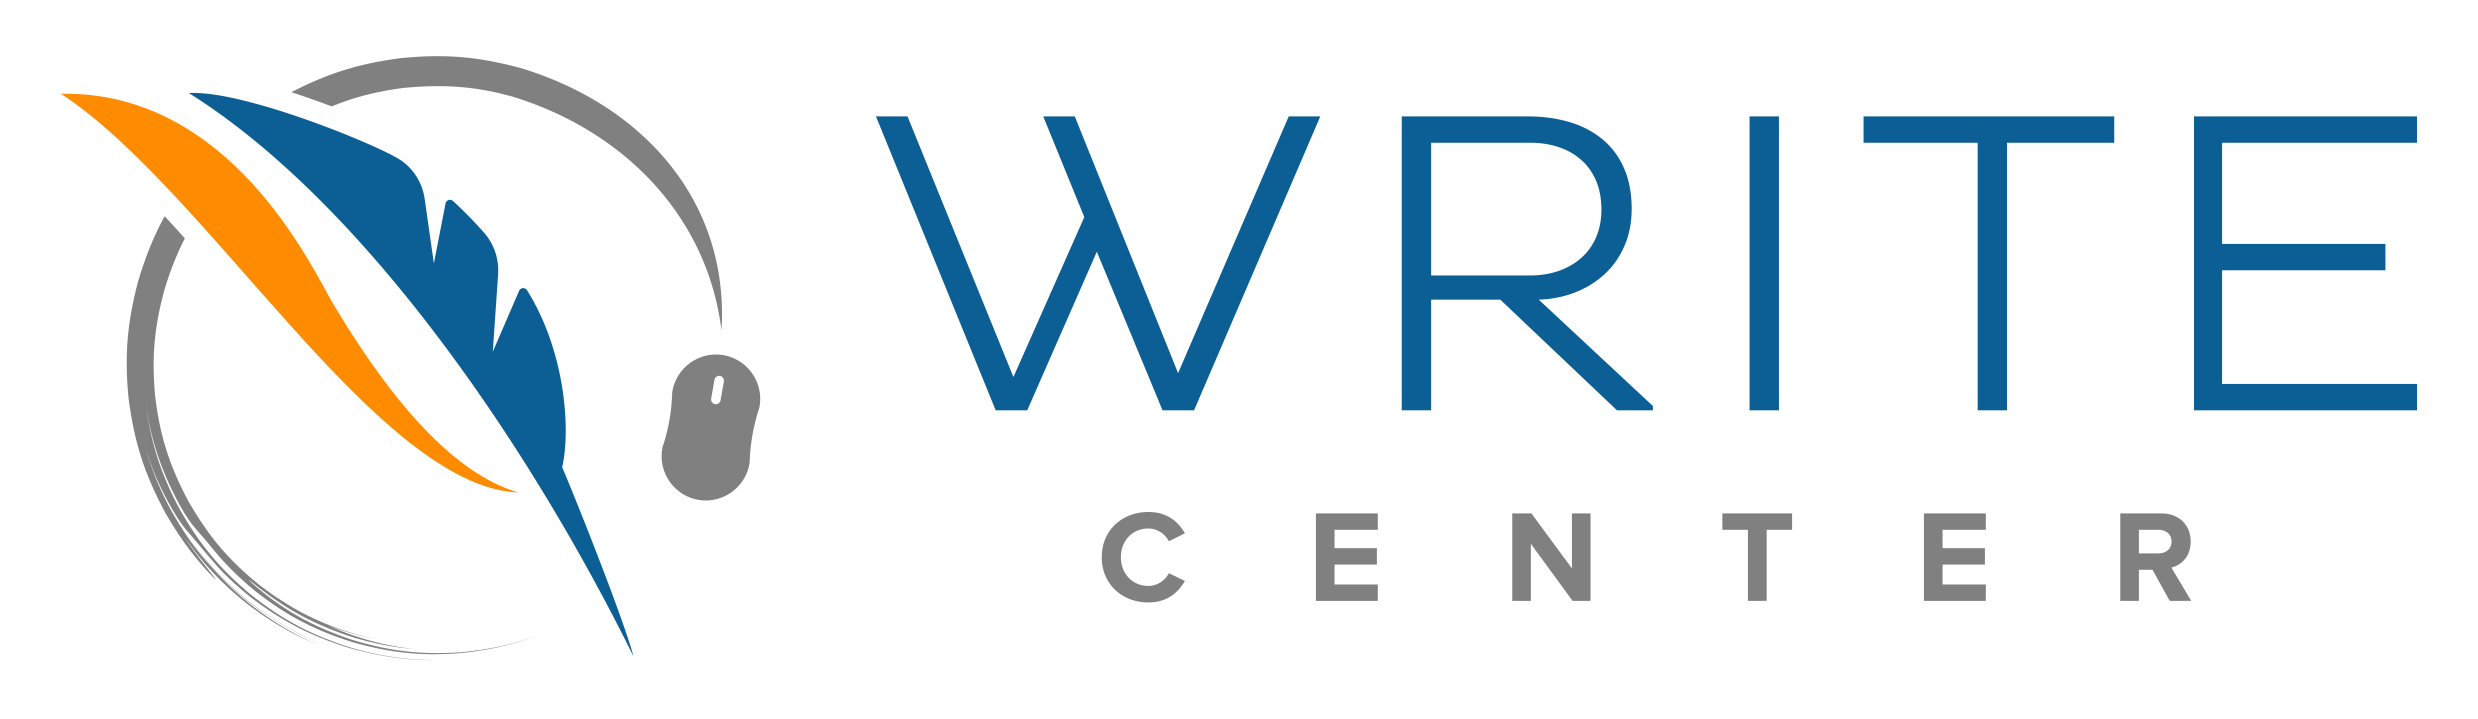 National Research Center for Adolescent Writing Needs a Logo!